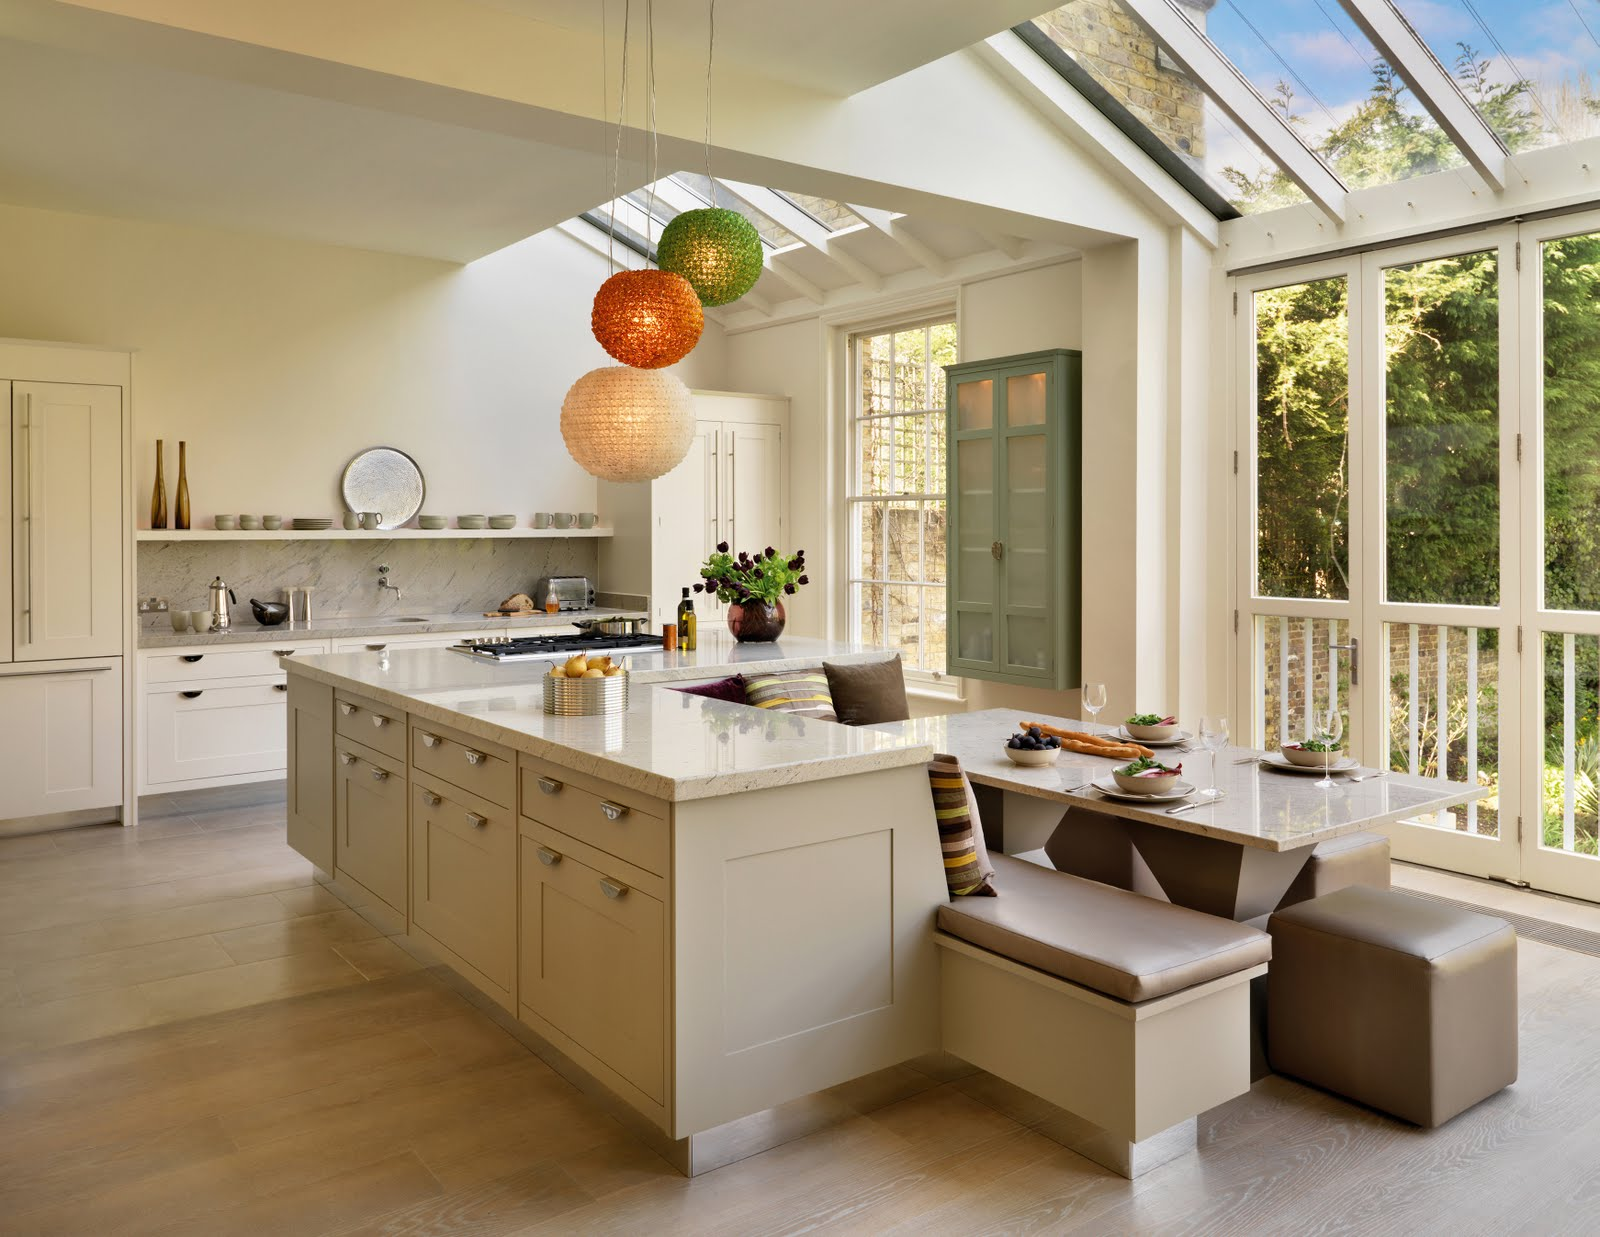 Superbe Adorable Design Of The Brown Wooden Floor Added With White Cabinets And Kitchen  Island As The